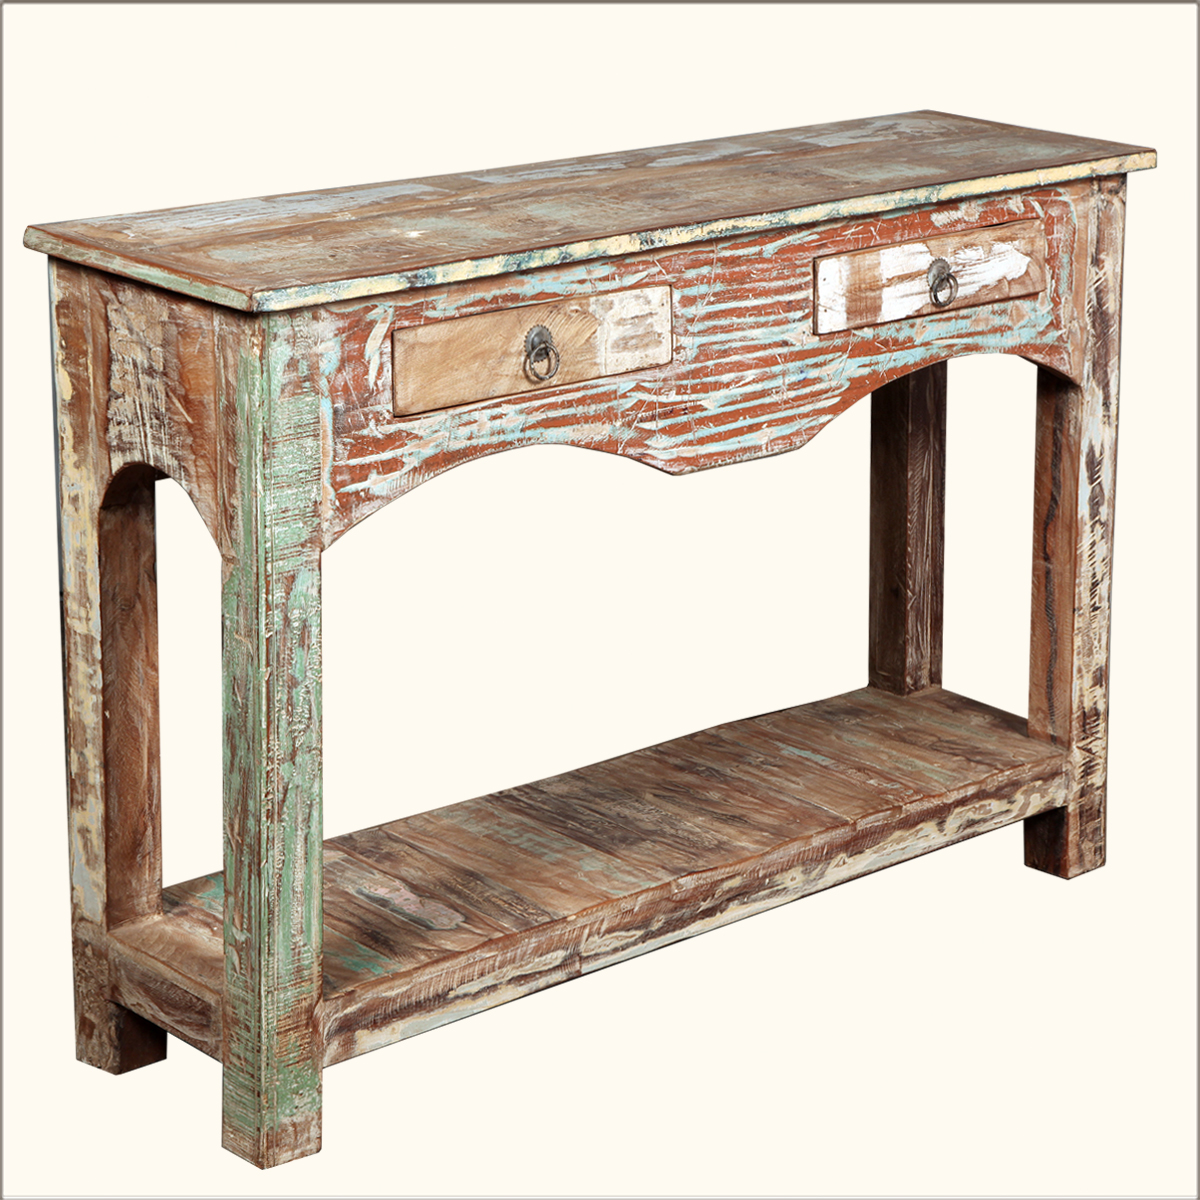 Foyer Table Cabinet : Distressed reclaimed wood drawer rustic console hall